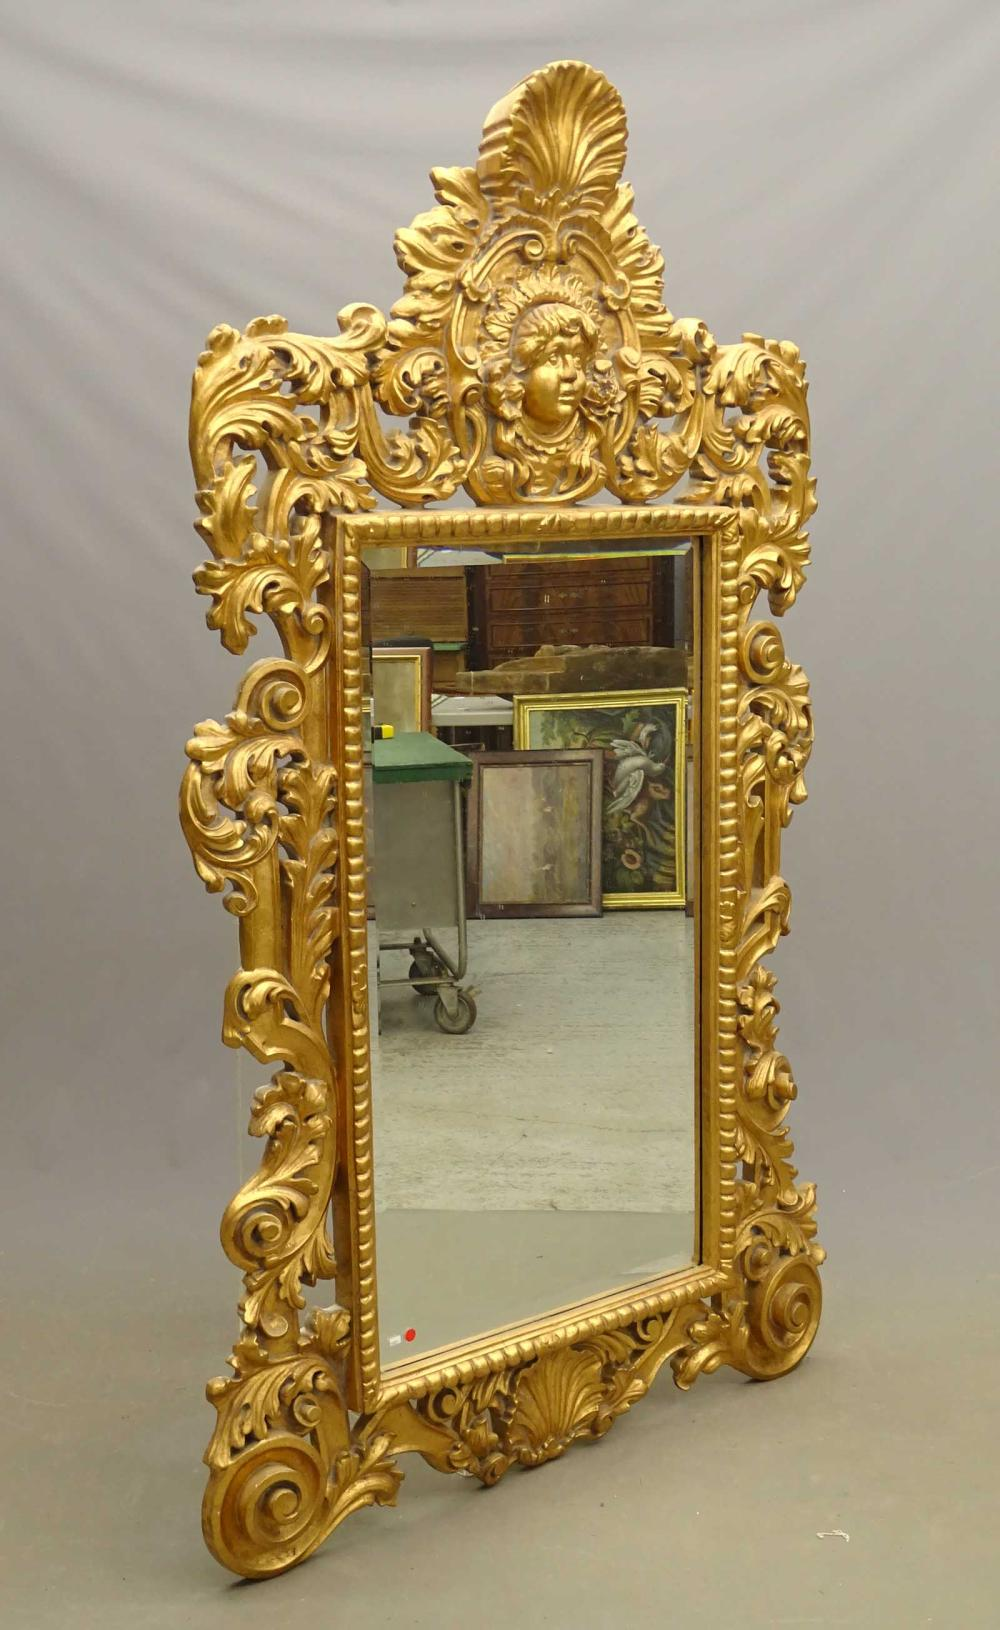 Massive Decorative Mirror